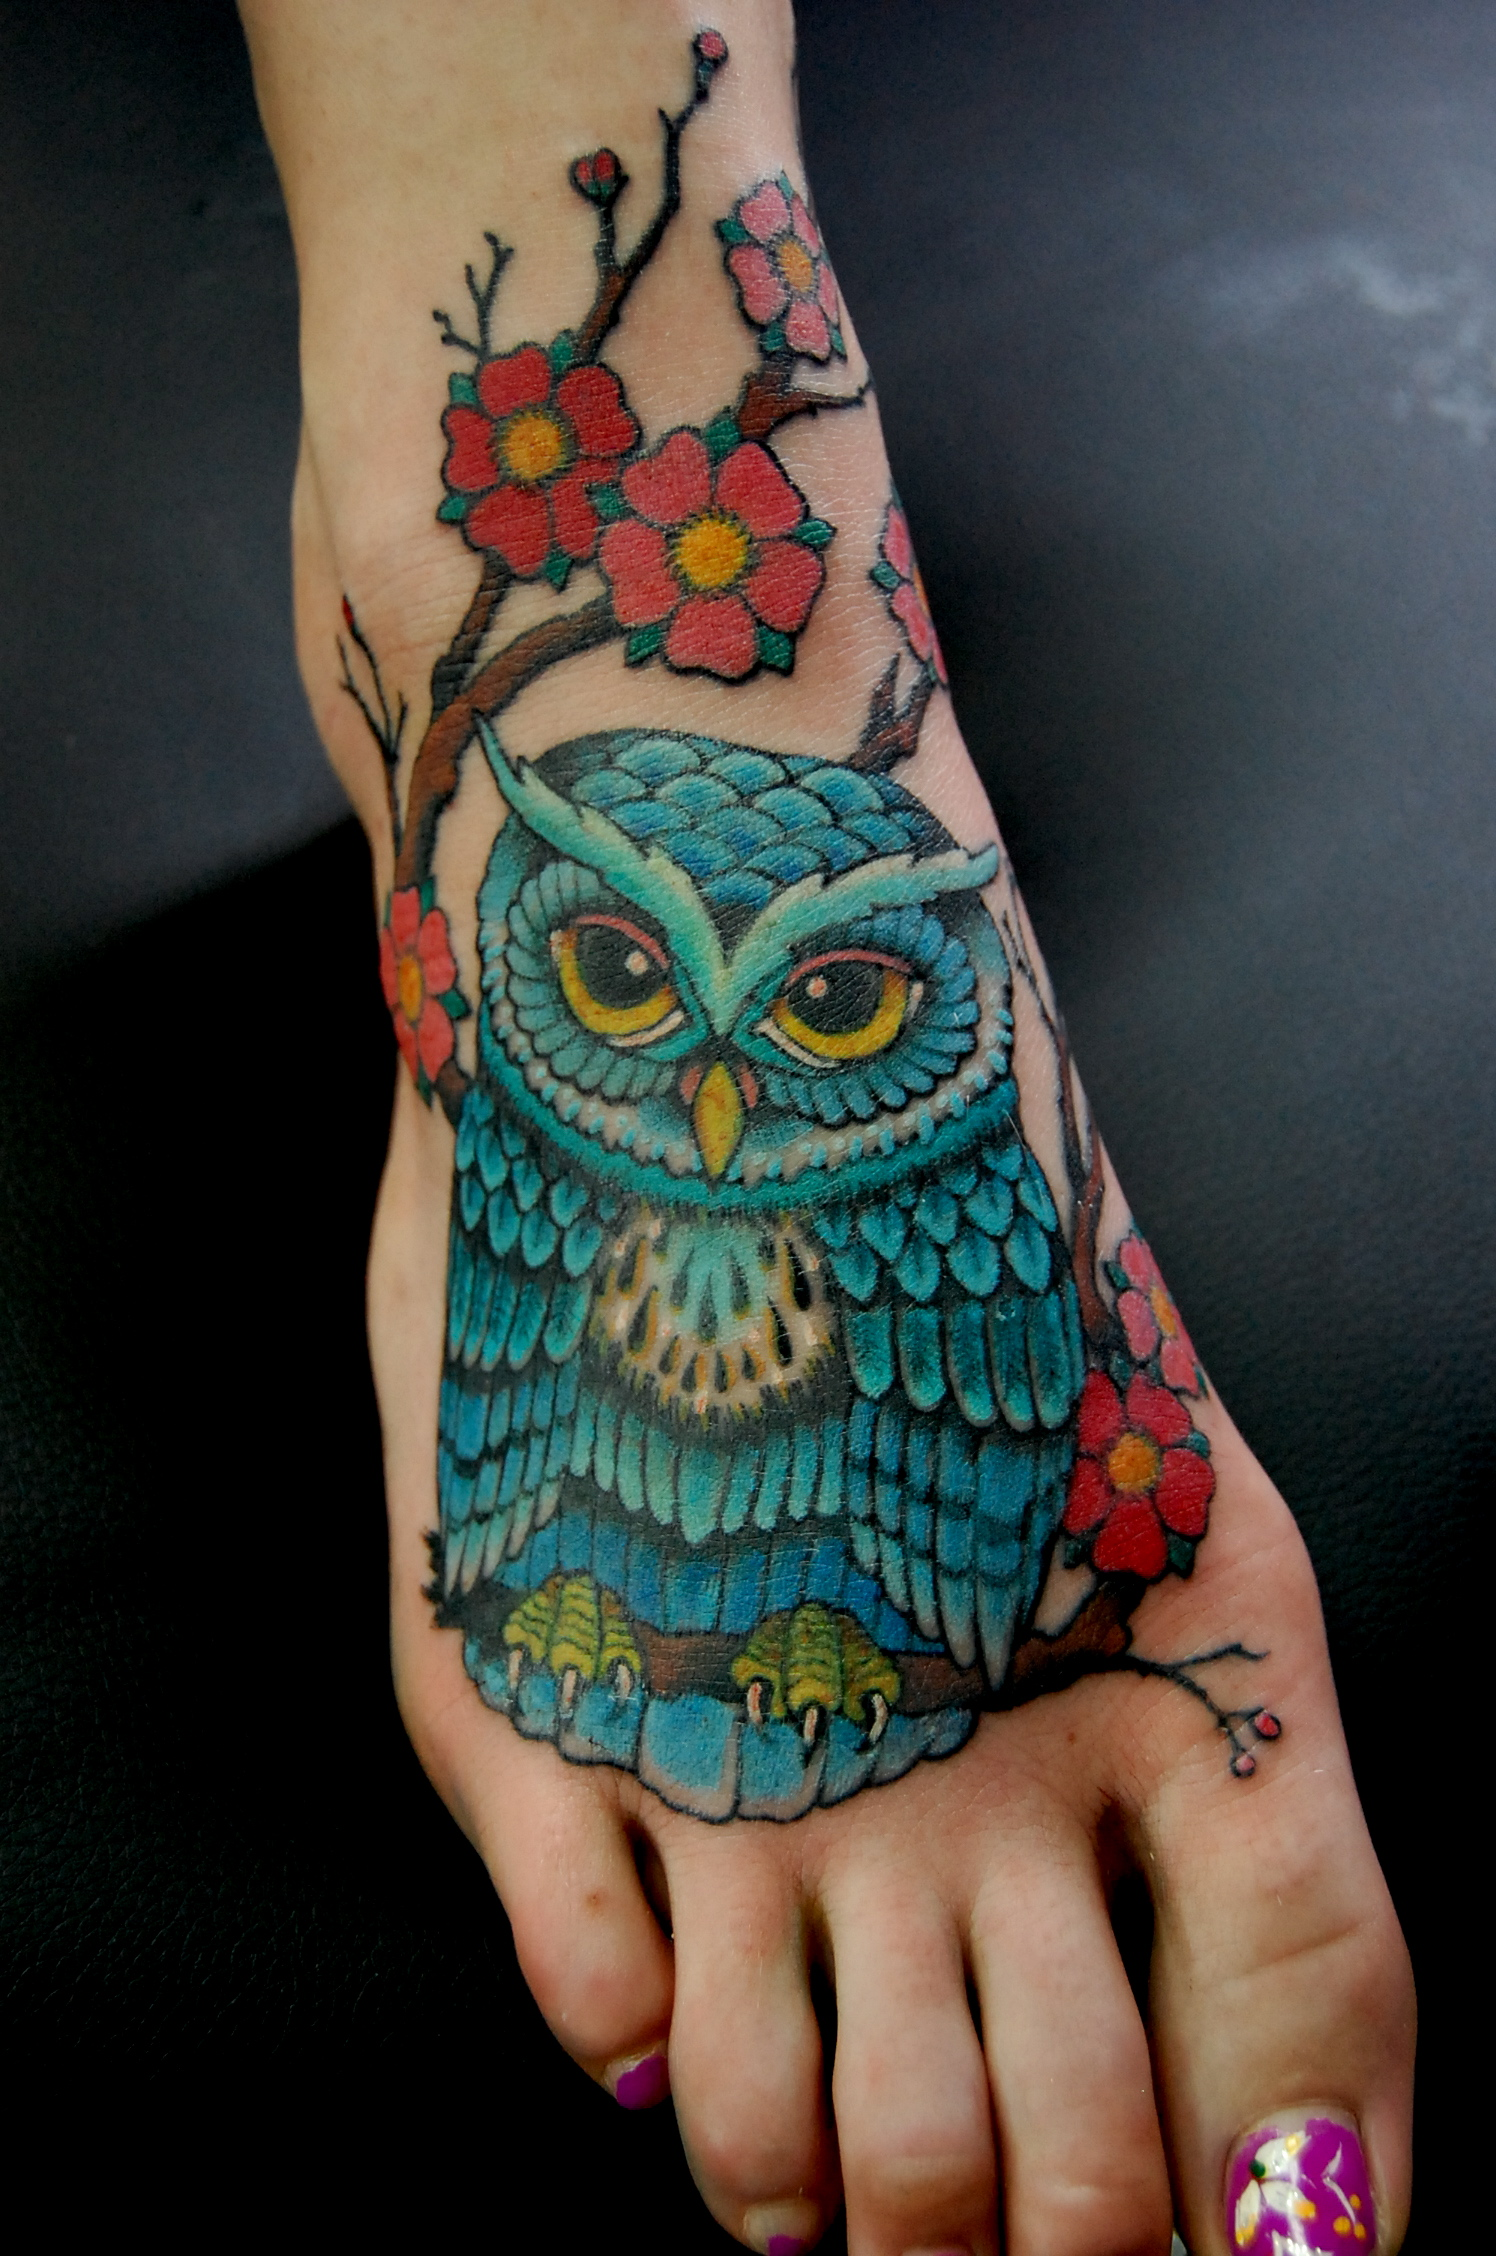 Mikey Slater Tattoos – 1920 Tattoo Ideas And Designs